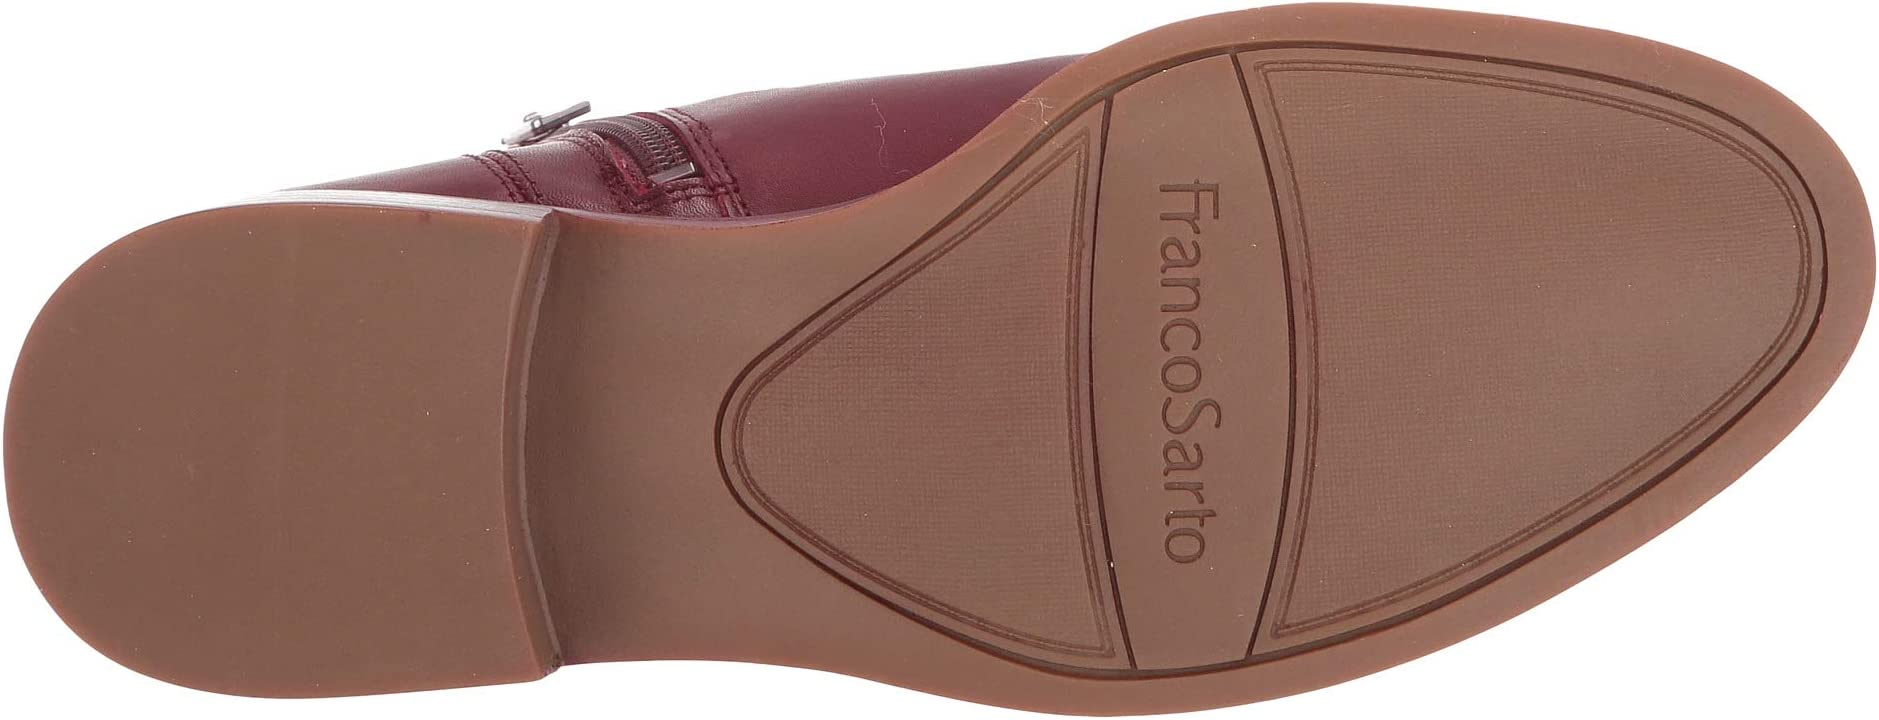 Franco Sarto Happily   Women's shoes   2020 Newest